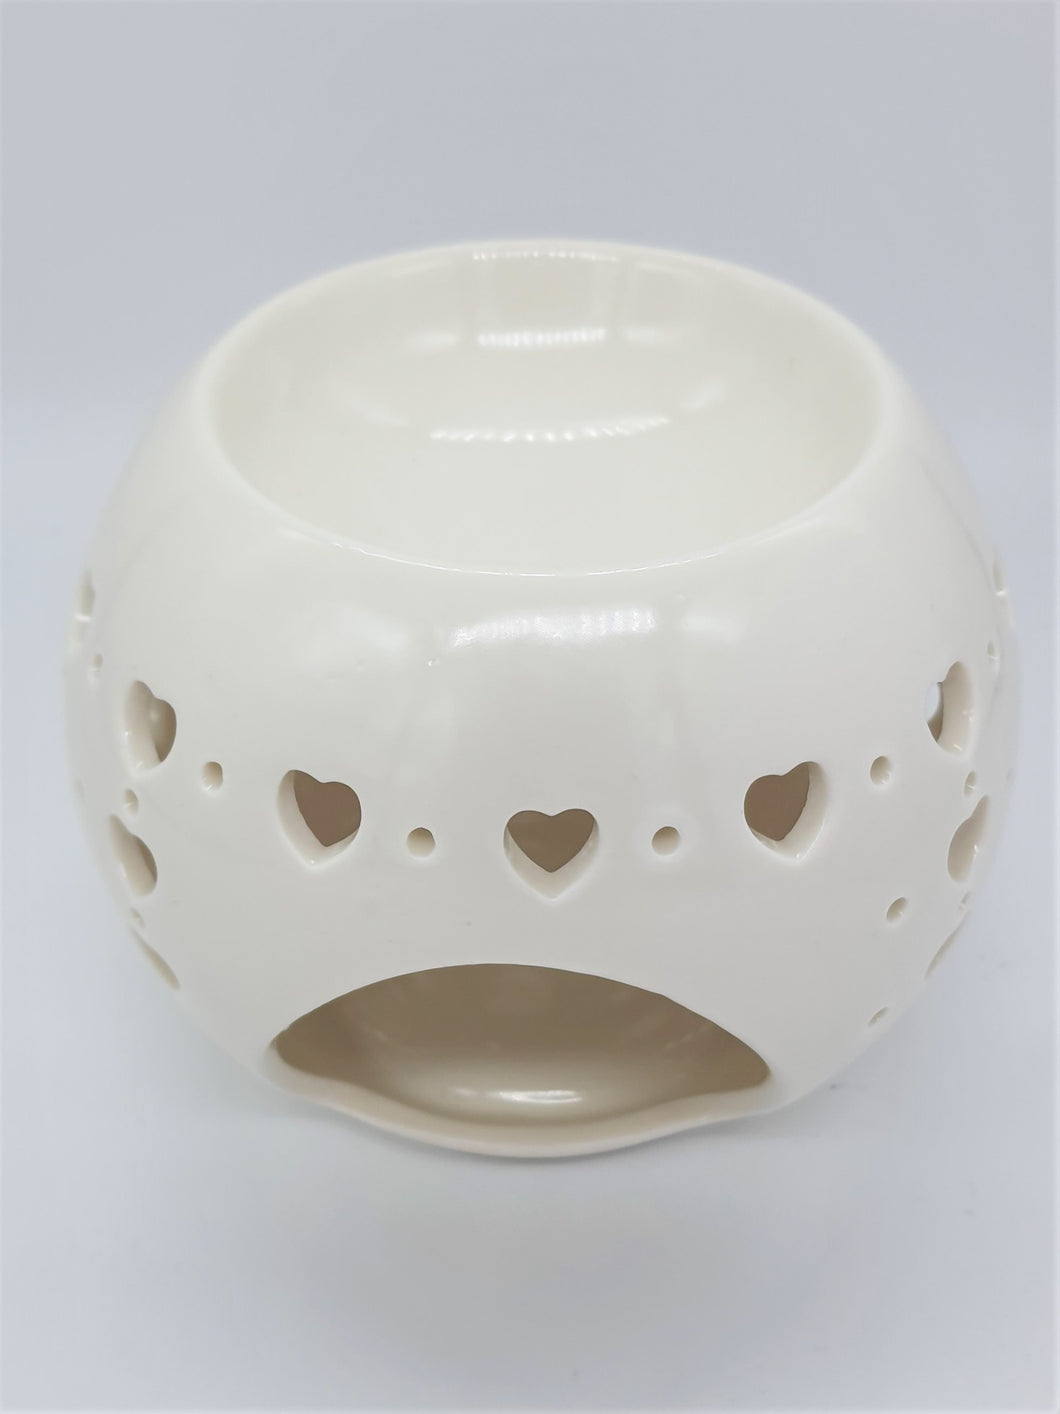 Ceramic OIl/Wax burner with heart cut out design